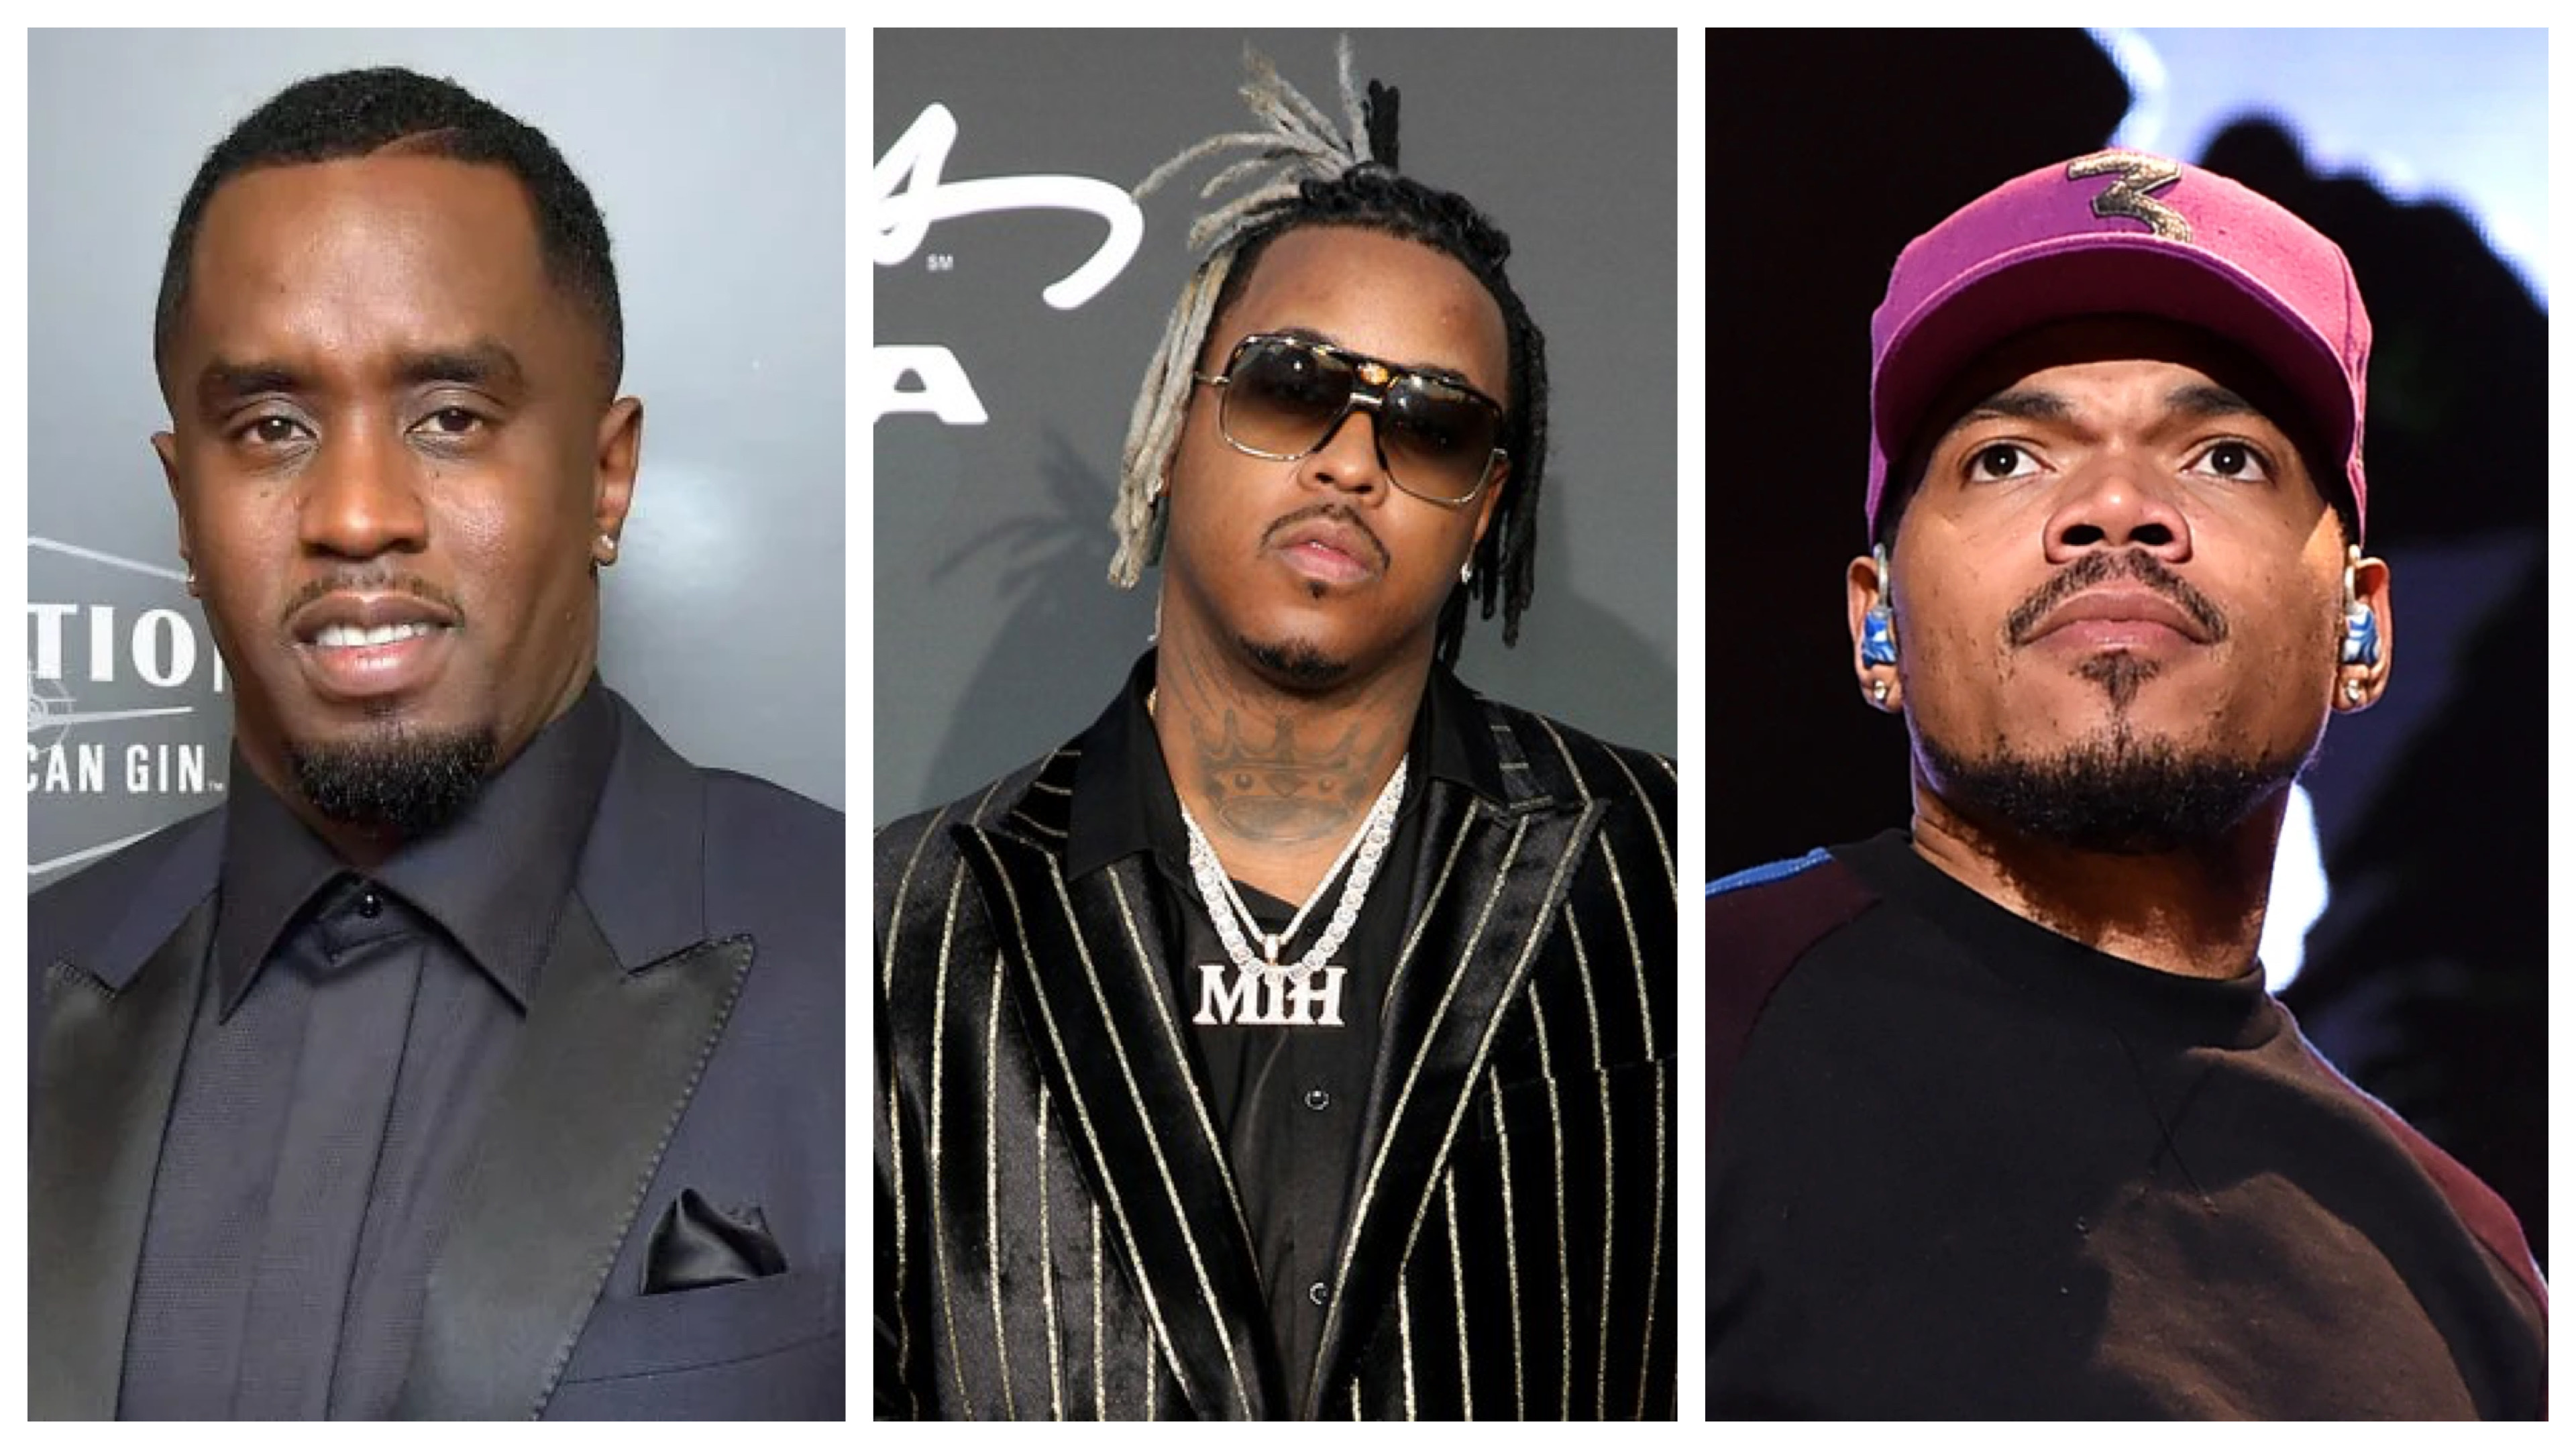 Diddy, Jeremih and Chance The Rapper